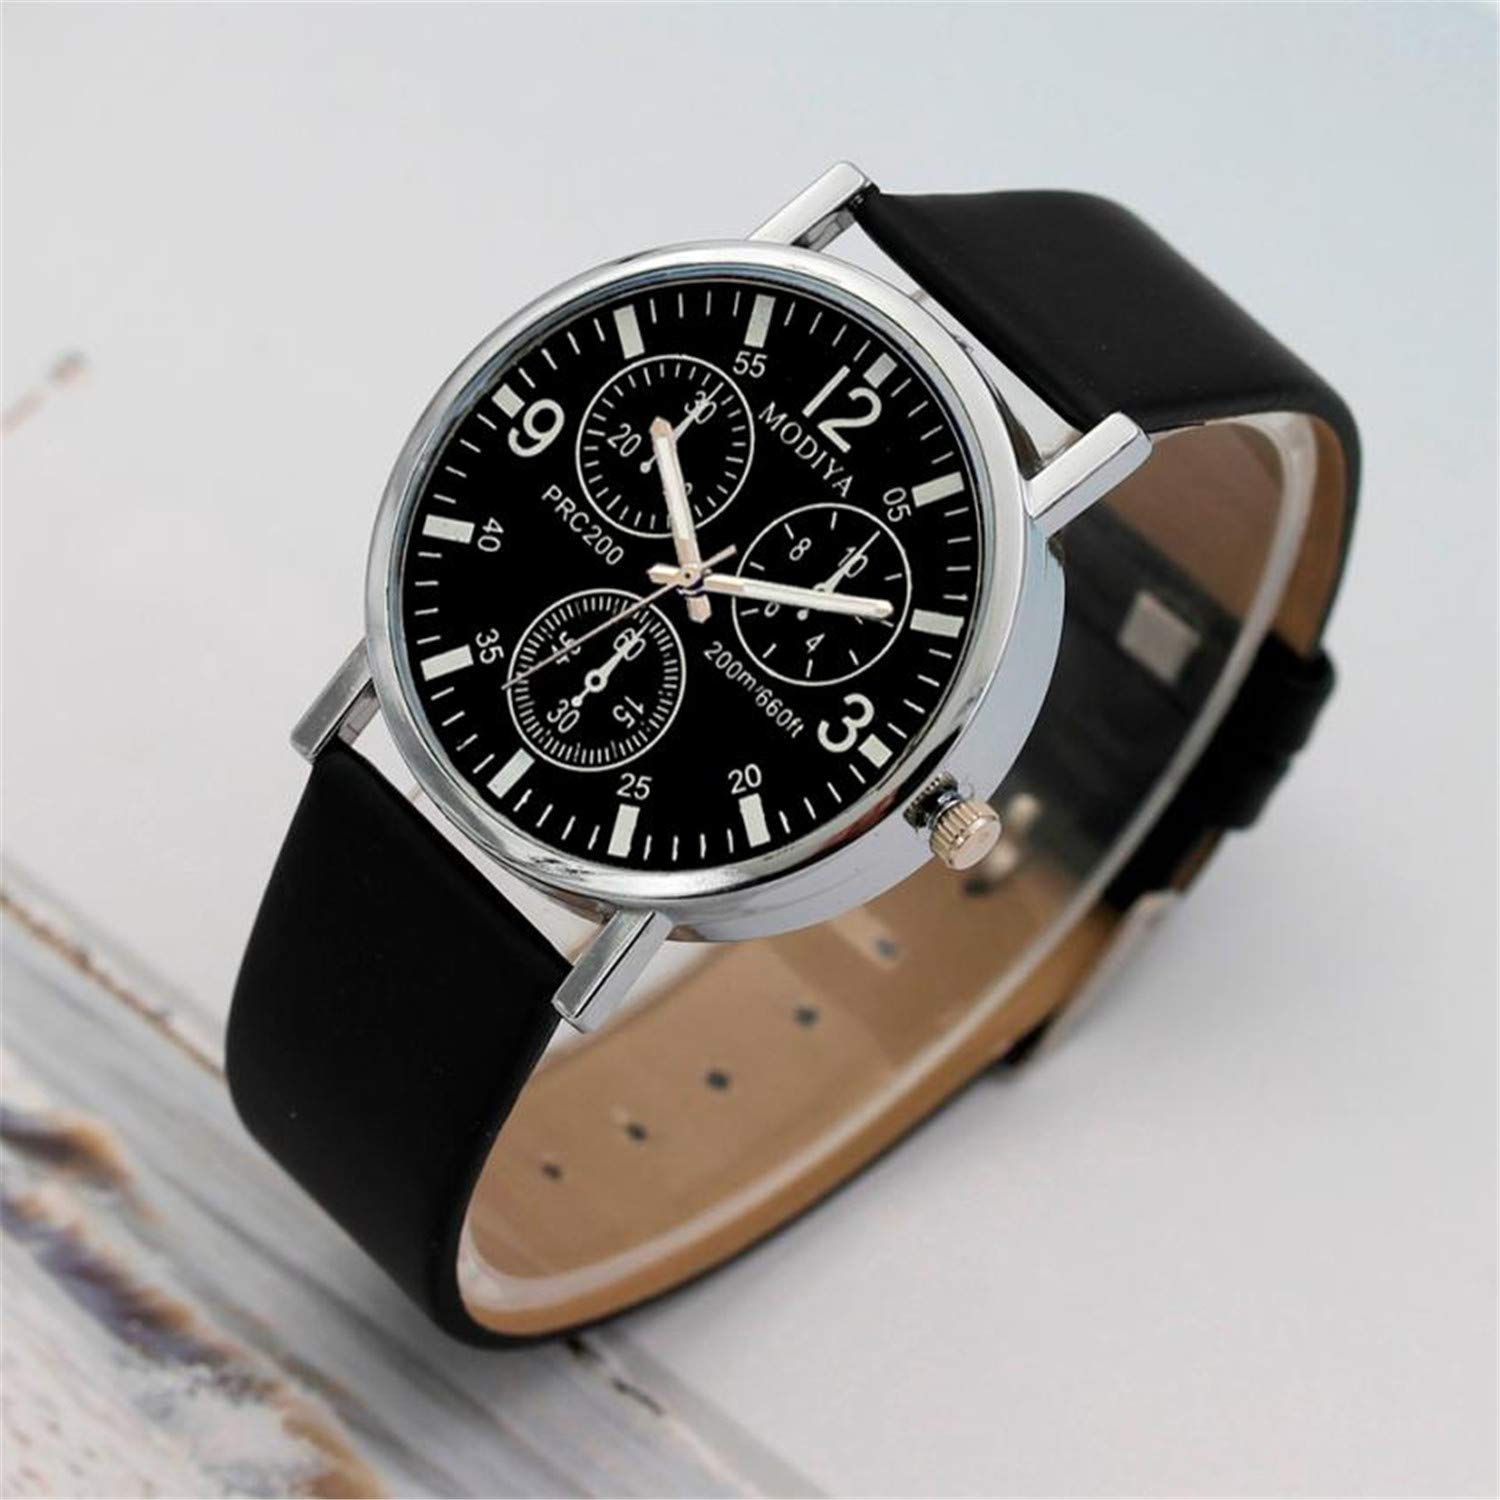 Amazon.com : SUPERON Relojes reloj Hombre Watch Men Luxury Fashion Faux Leather Mens Blue Ray Glass Quartz Analog Sports Watches with Calendar(A, ...